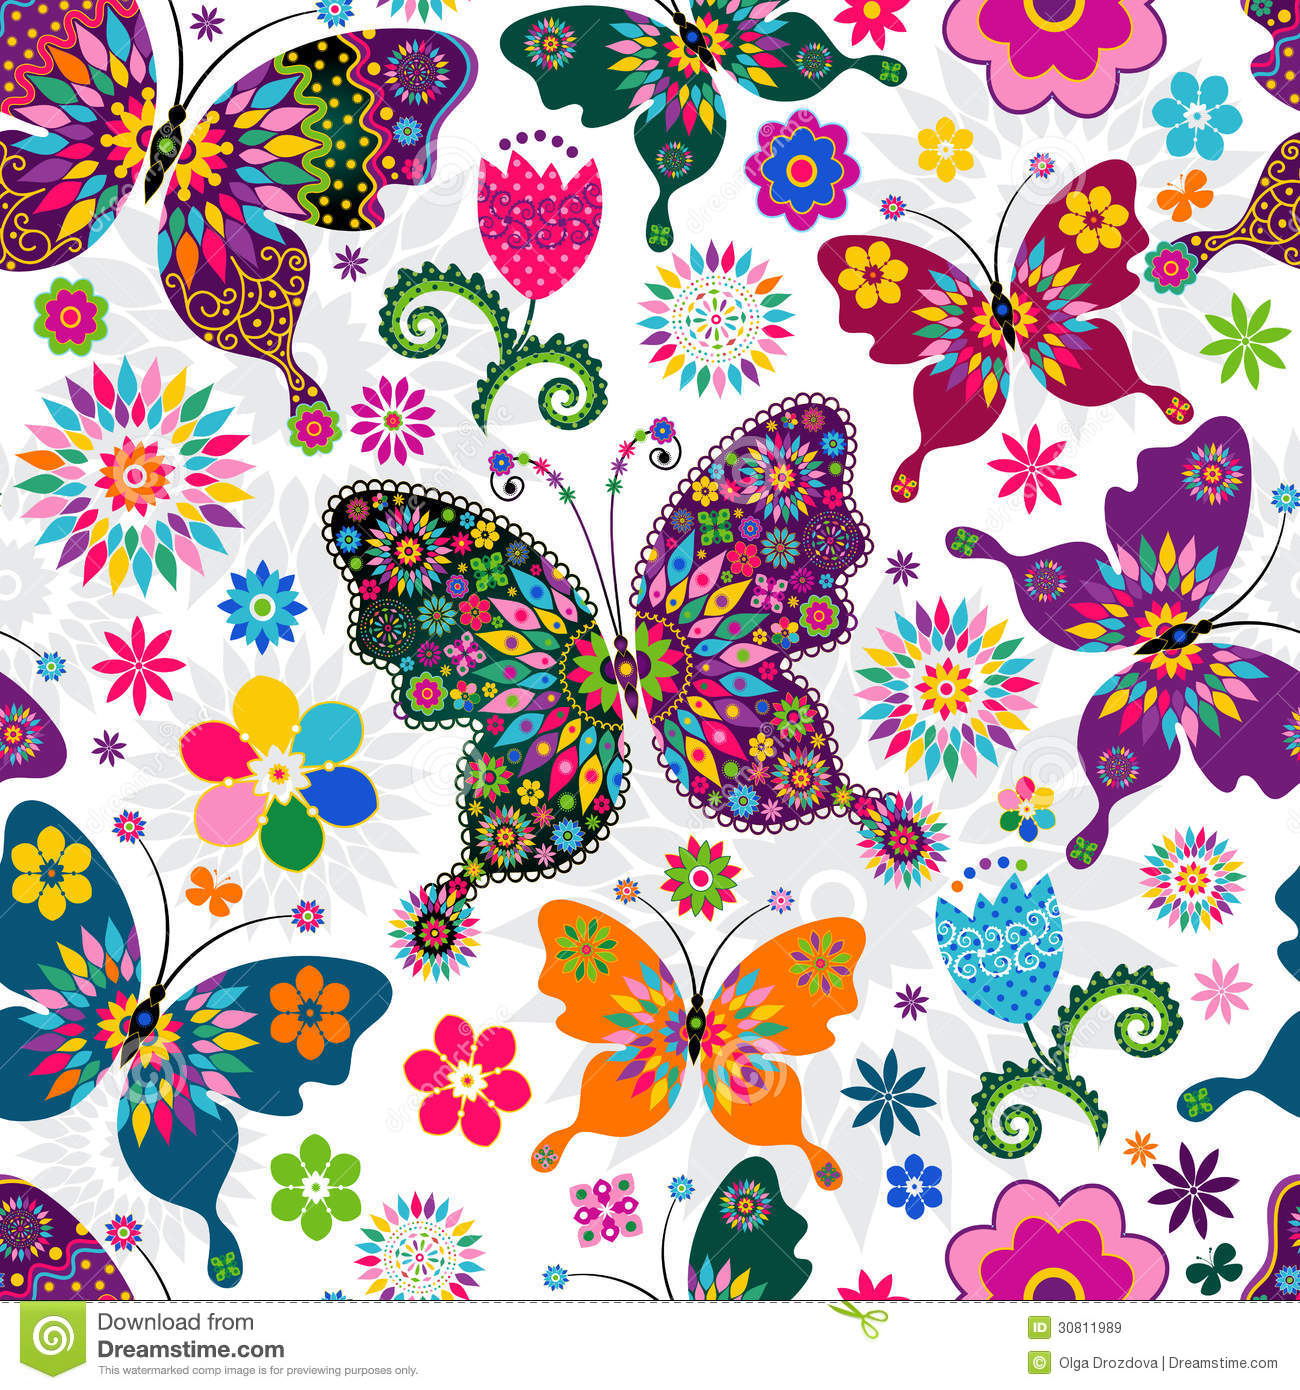 seamless spring pattern royalty free stock images image Cblank Business Cards for Free Business Card Design Templates